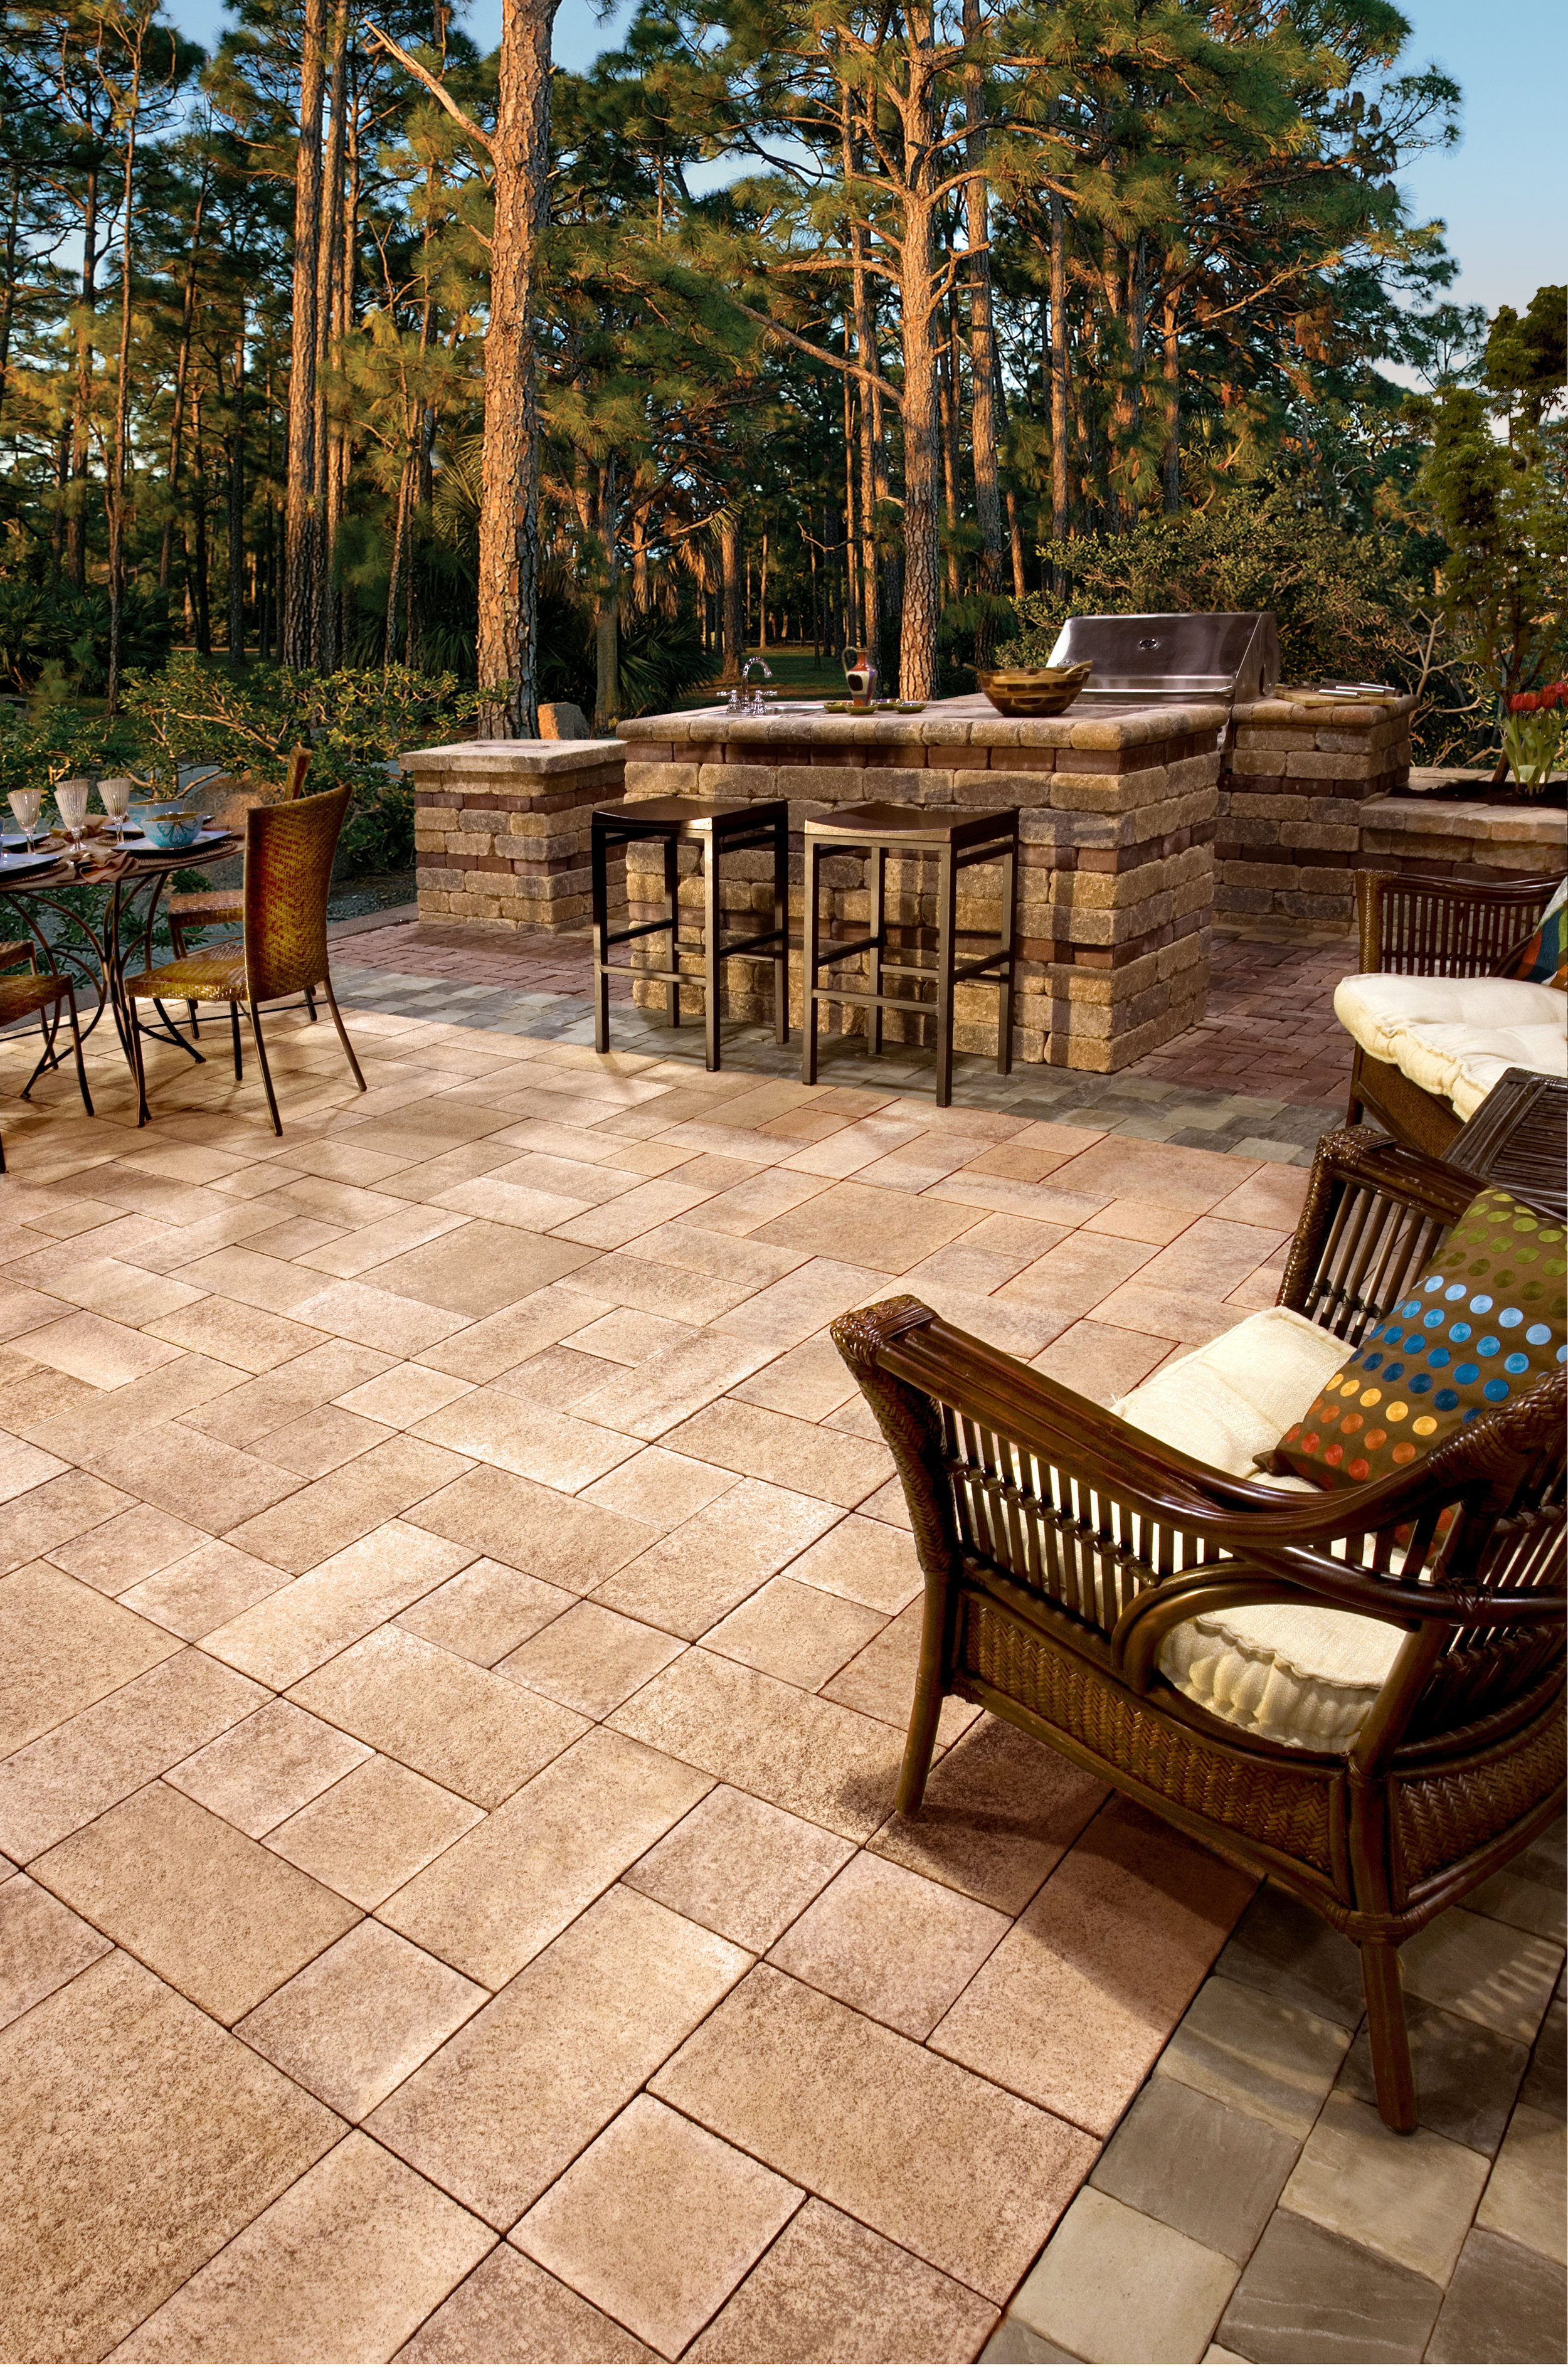 5 Outdoor Kitchen Island Designs to Consider for Your Concord, NH, Landscape